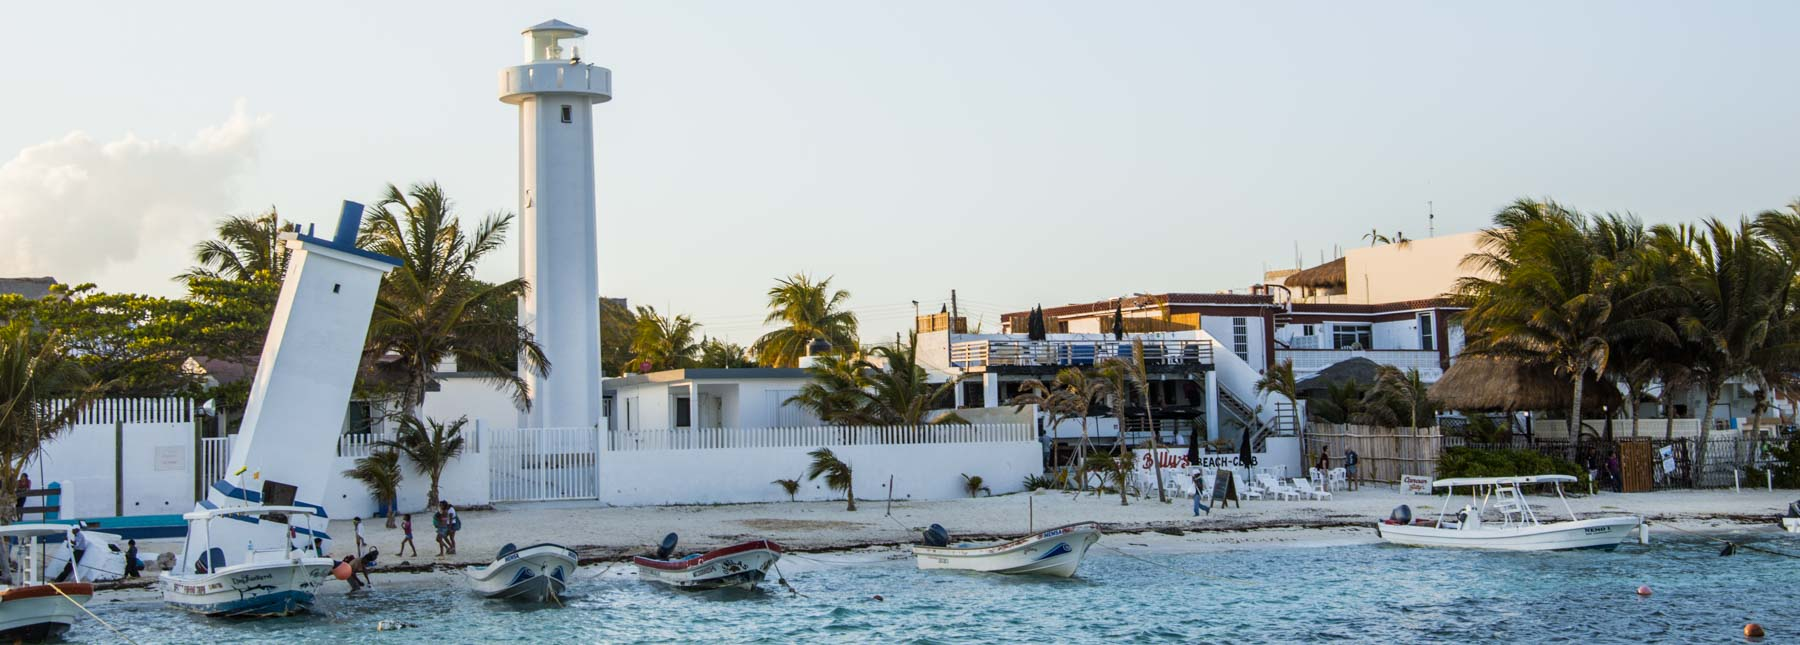 The Puerto Morelos leaning lighthouse.